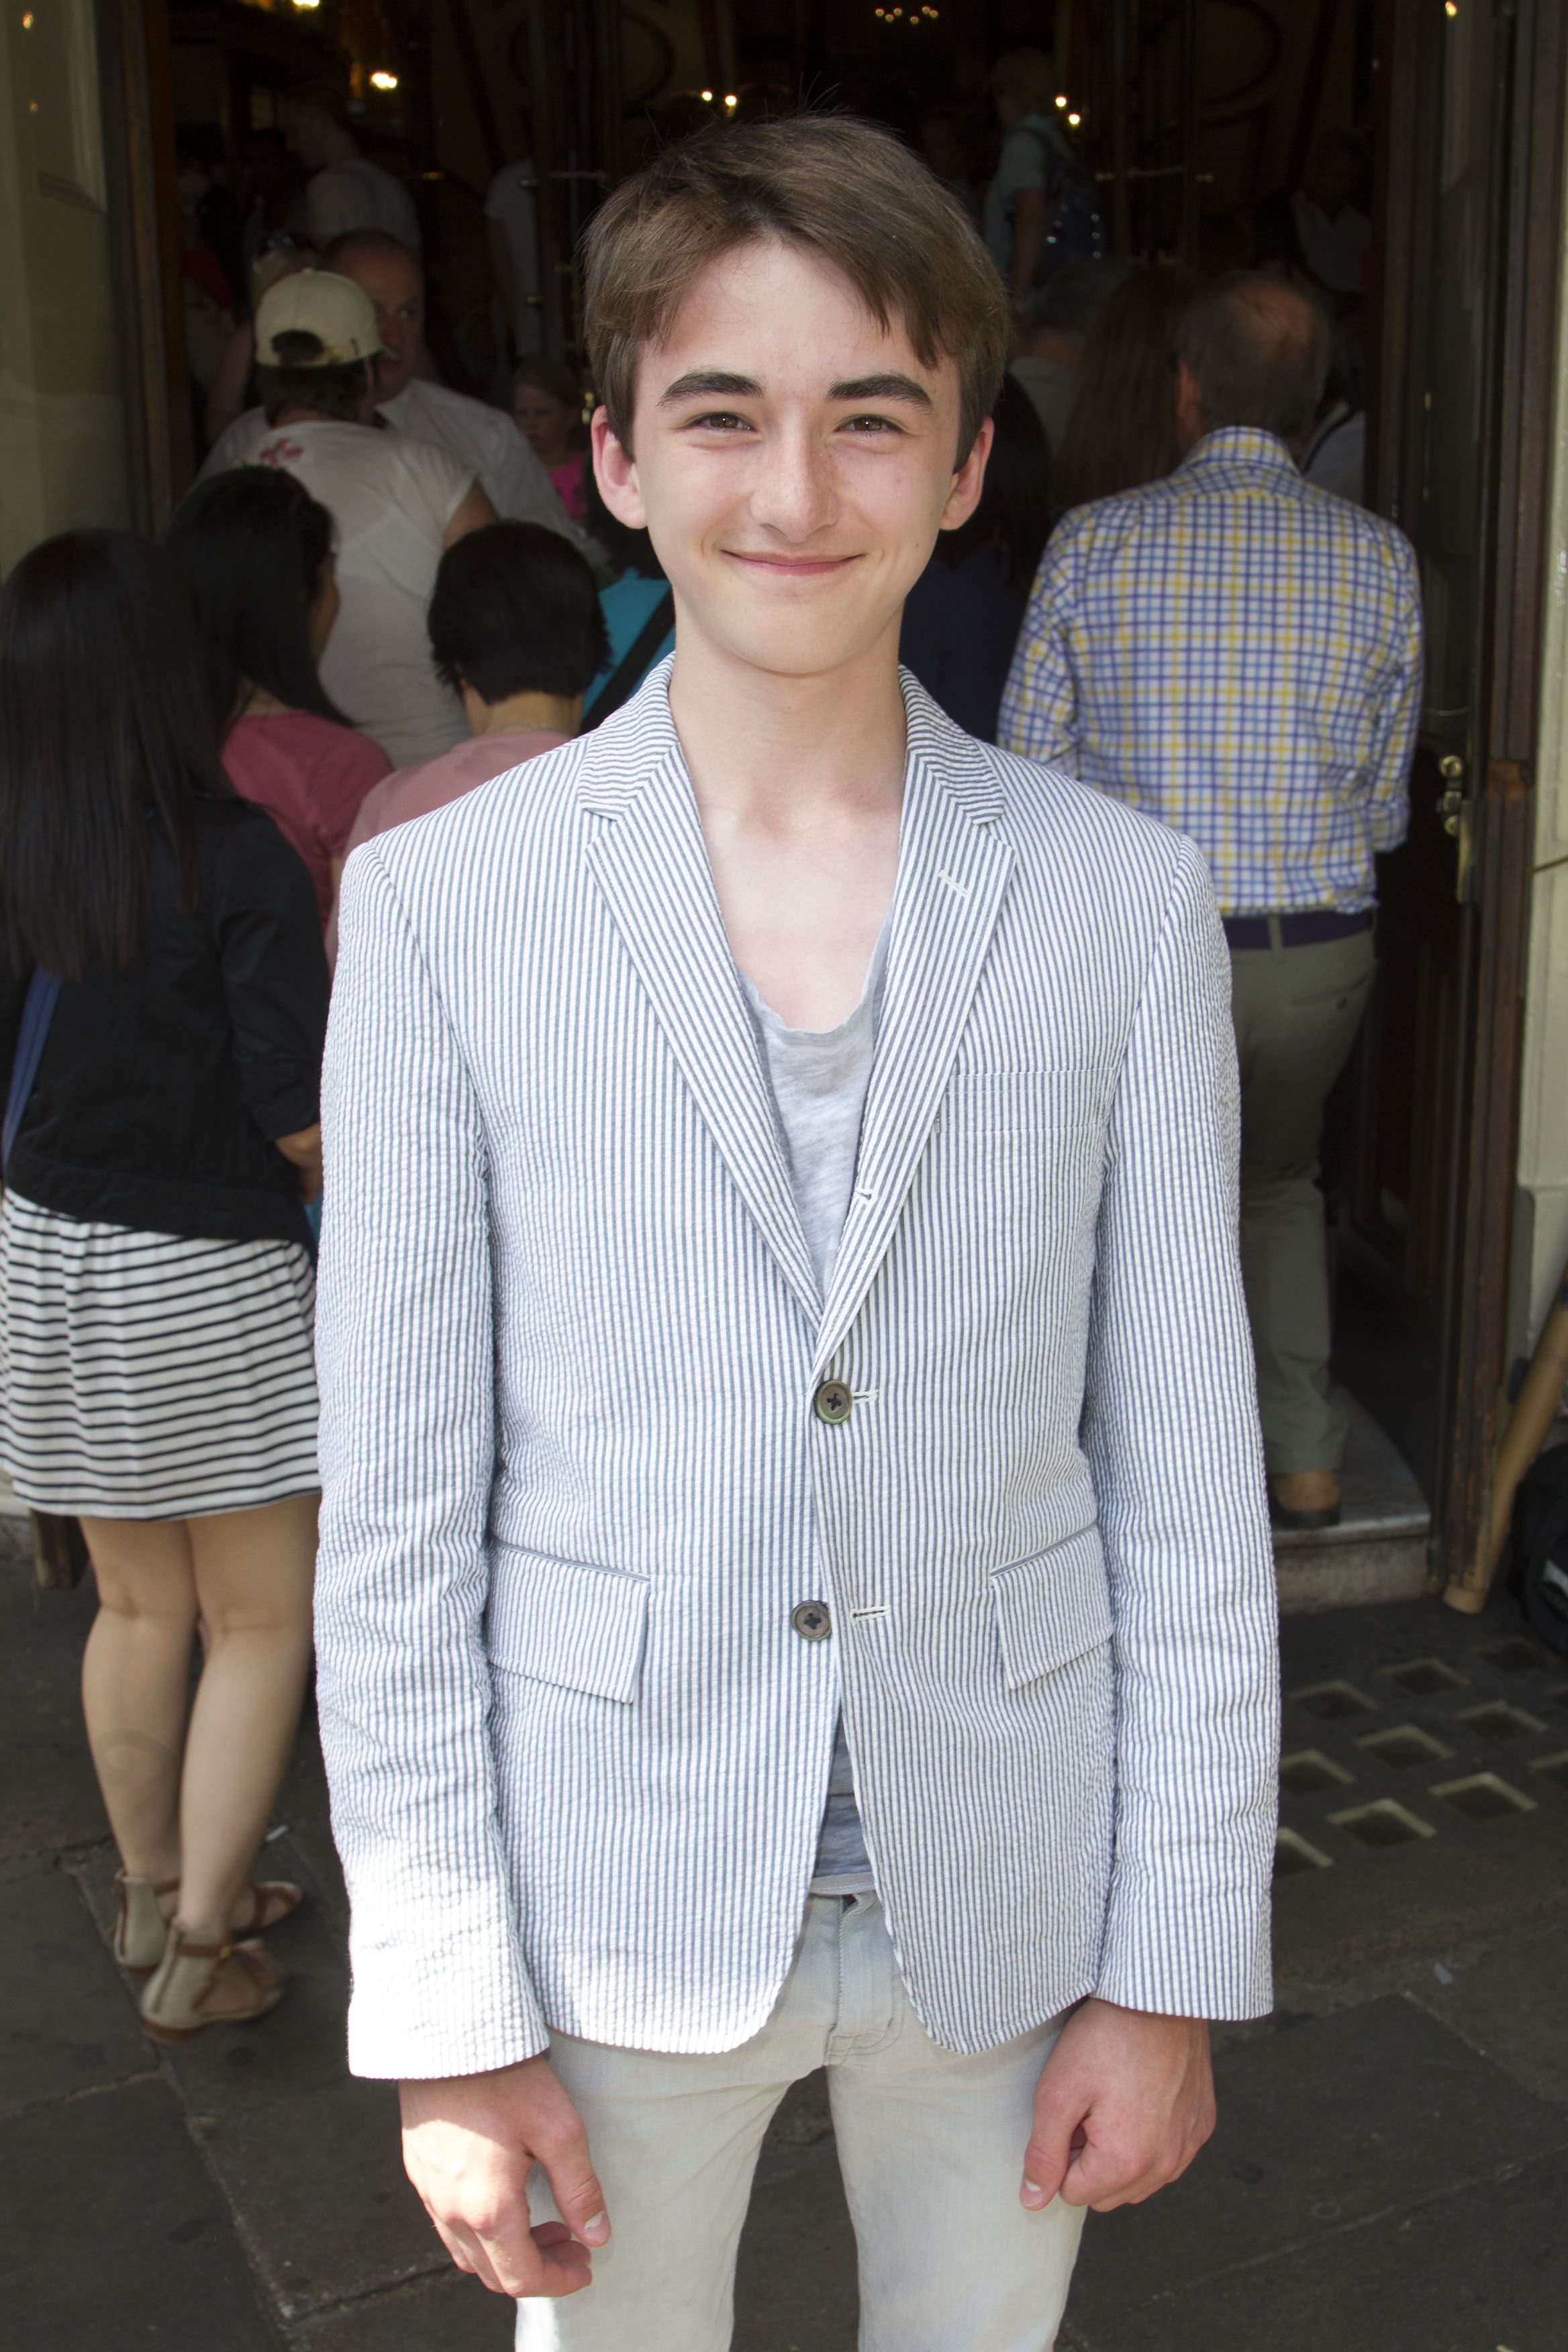 isaac hempstead wright 2016isaac hempstead wright height, isaac hempstead wright gif hunt, isaac hempstead wright facebook, isaac hempstead wright vk, isaac hempstead wright instagram, isaac hempstead wright twitter, isaac hempstead wright 2015, isaac hempstead wright game of thrones, isaac hempstead-wright interview, isaac hempstead wright tumblr, isaac hempstead wright 2016, isaac hempstead wright shirtless, isaac hempstead-wright and maisie williams, isaac hempstead-wright season 5, isaac hempstead wright 2014, isaac hempstead wright parents, isaac hempstead wright season 6, isaac hempstead-wright imdb, isaac hempstead wright the awakening, isaac hempstead-wright and thomas sangster